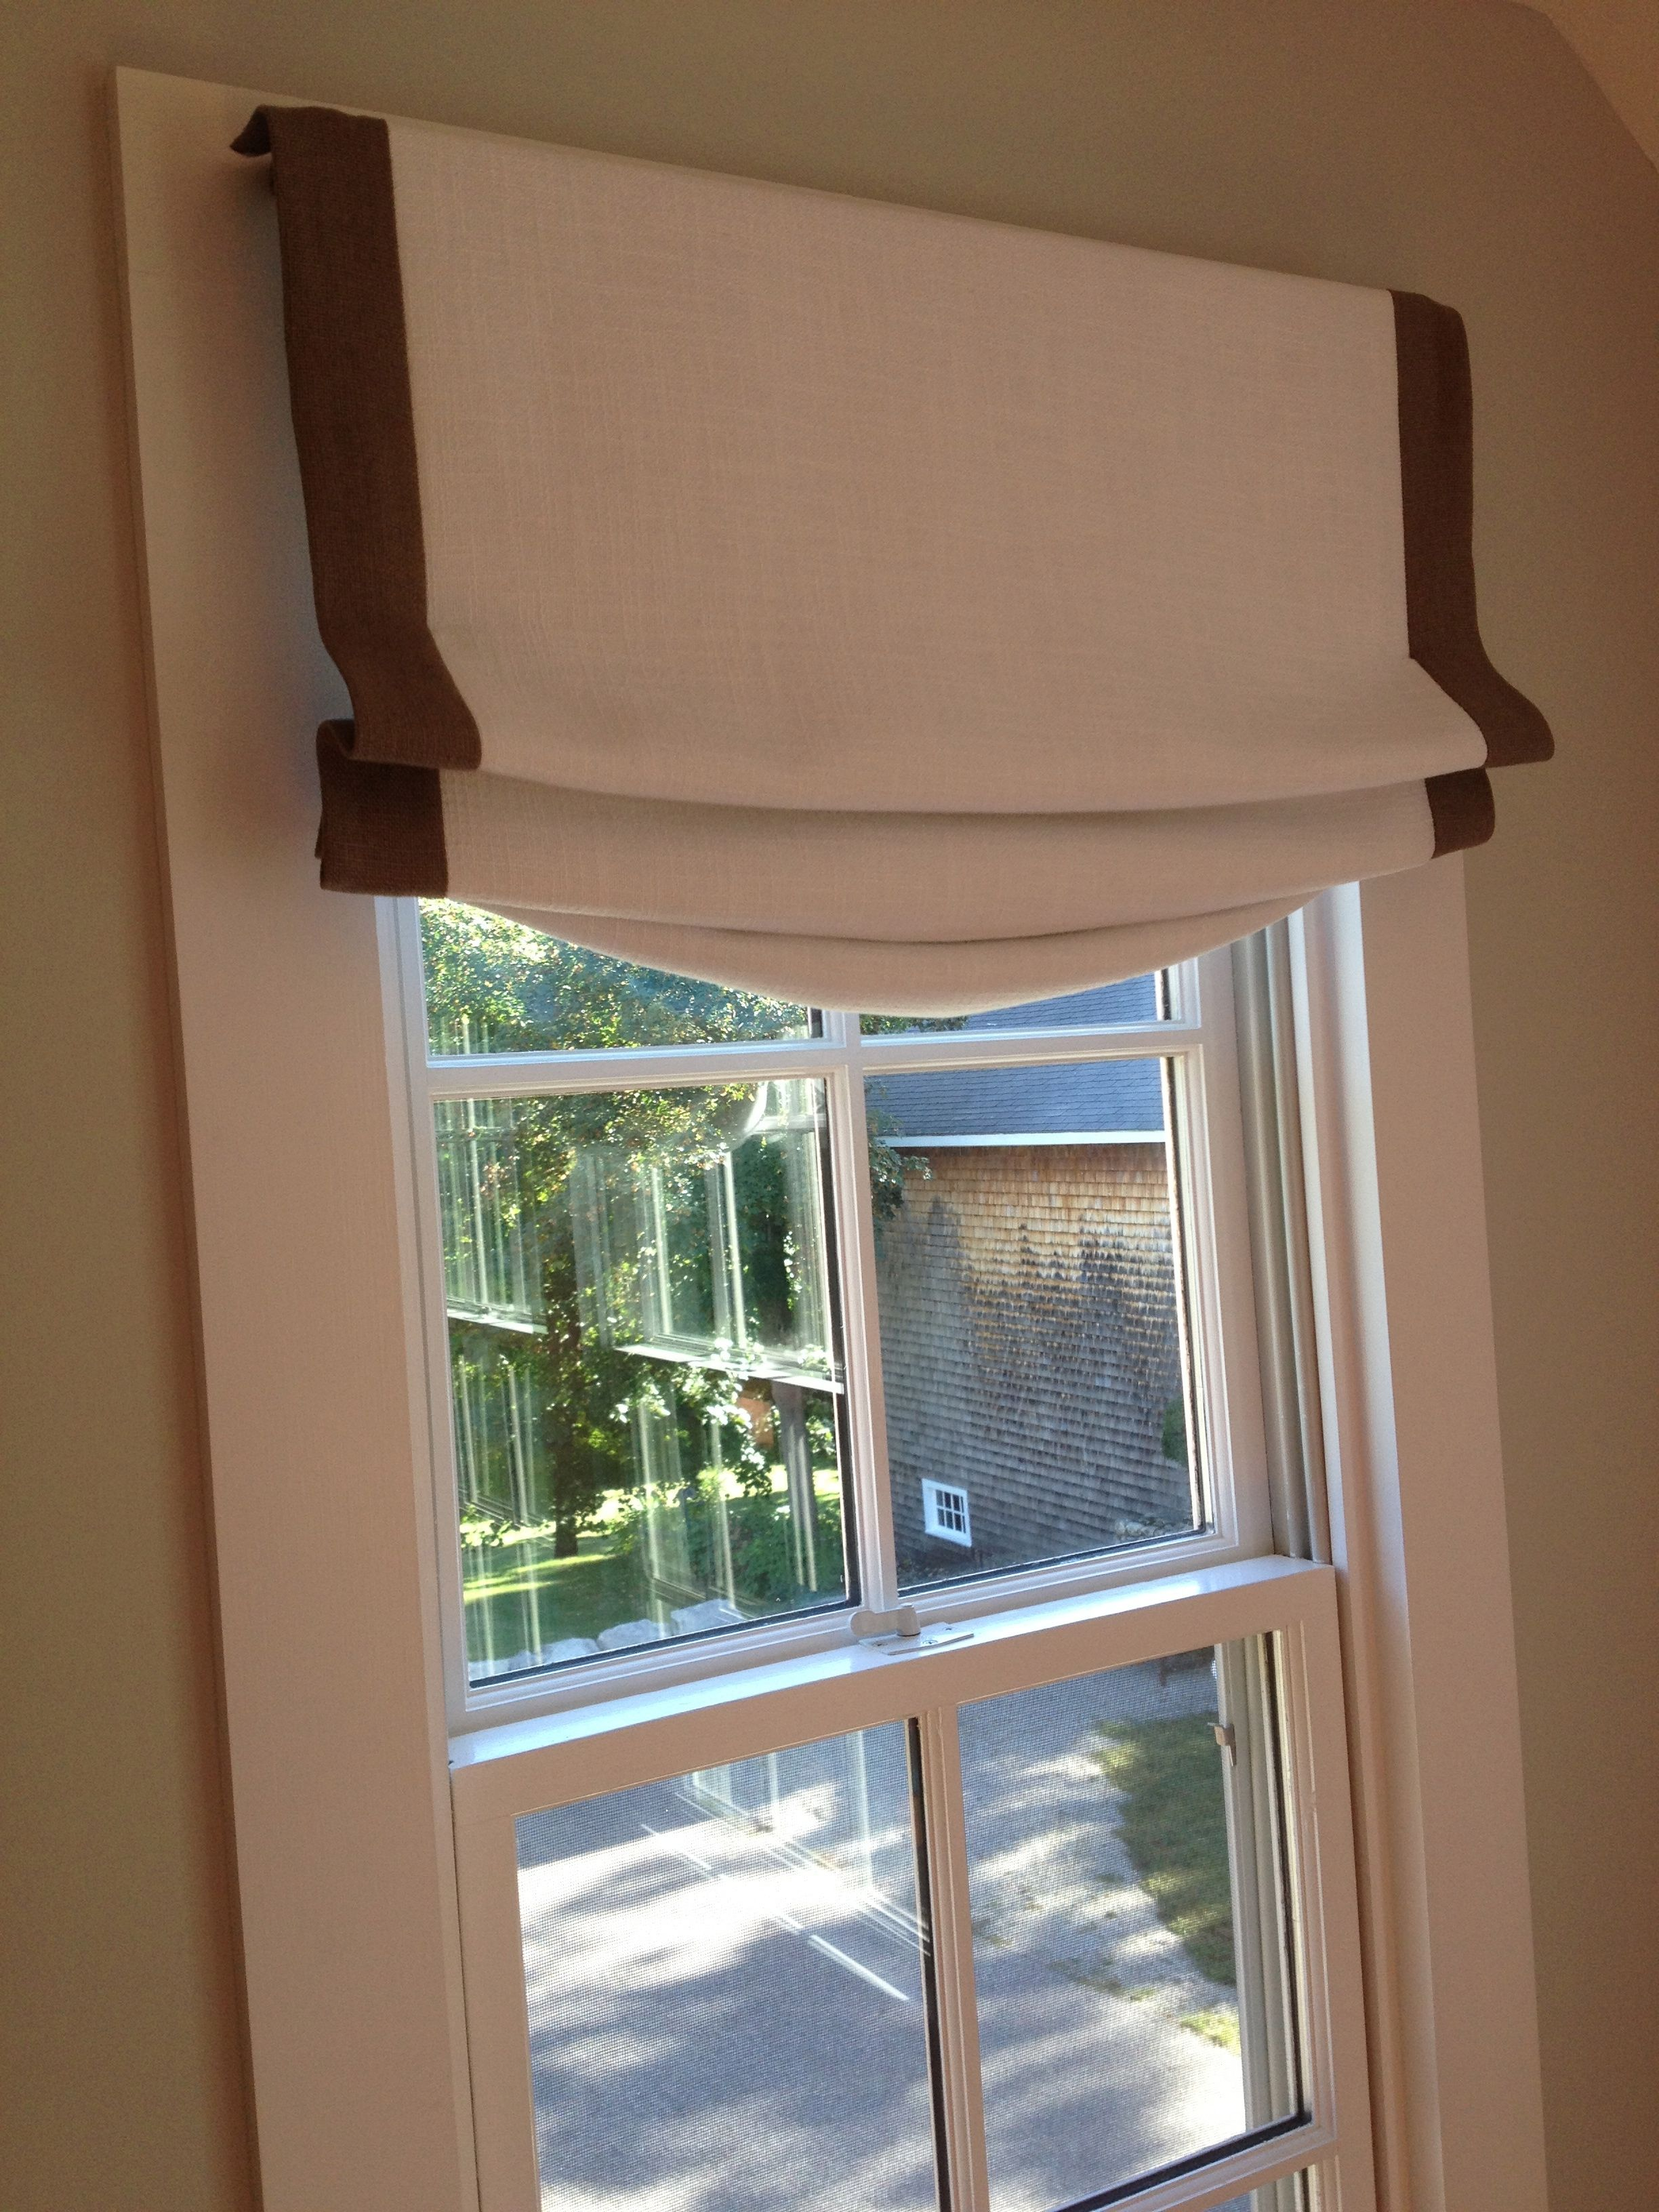 examples valance shades options different online roman of shade